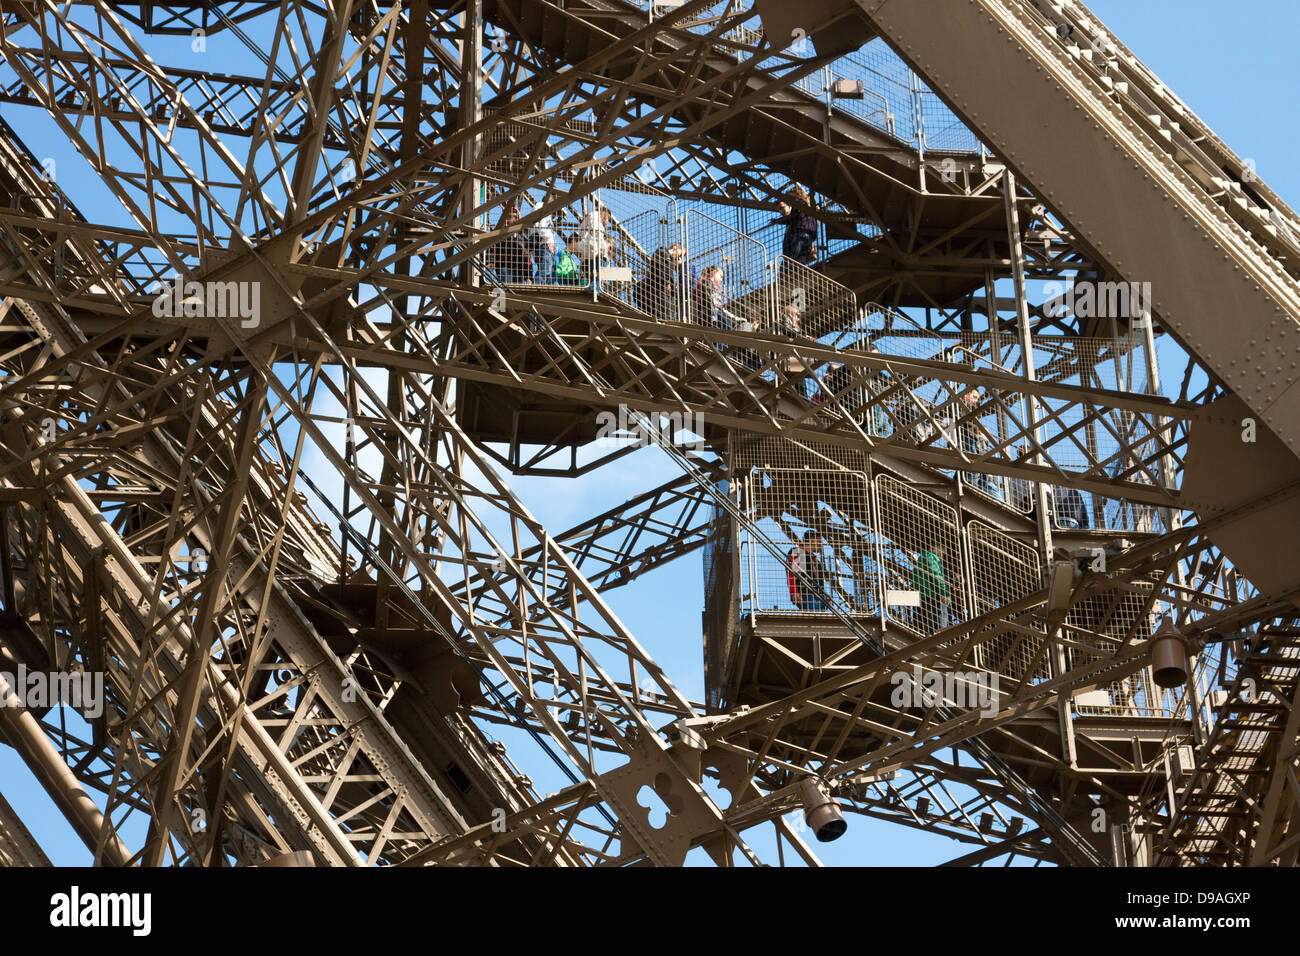 Tourists walking down steps through complex lattice iron girders to descend from first level of Eiffel Tower in Stock Photo